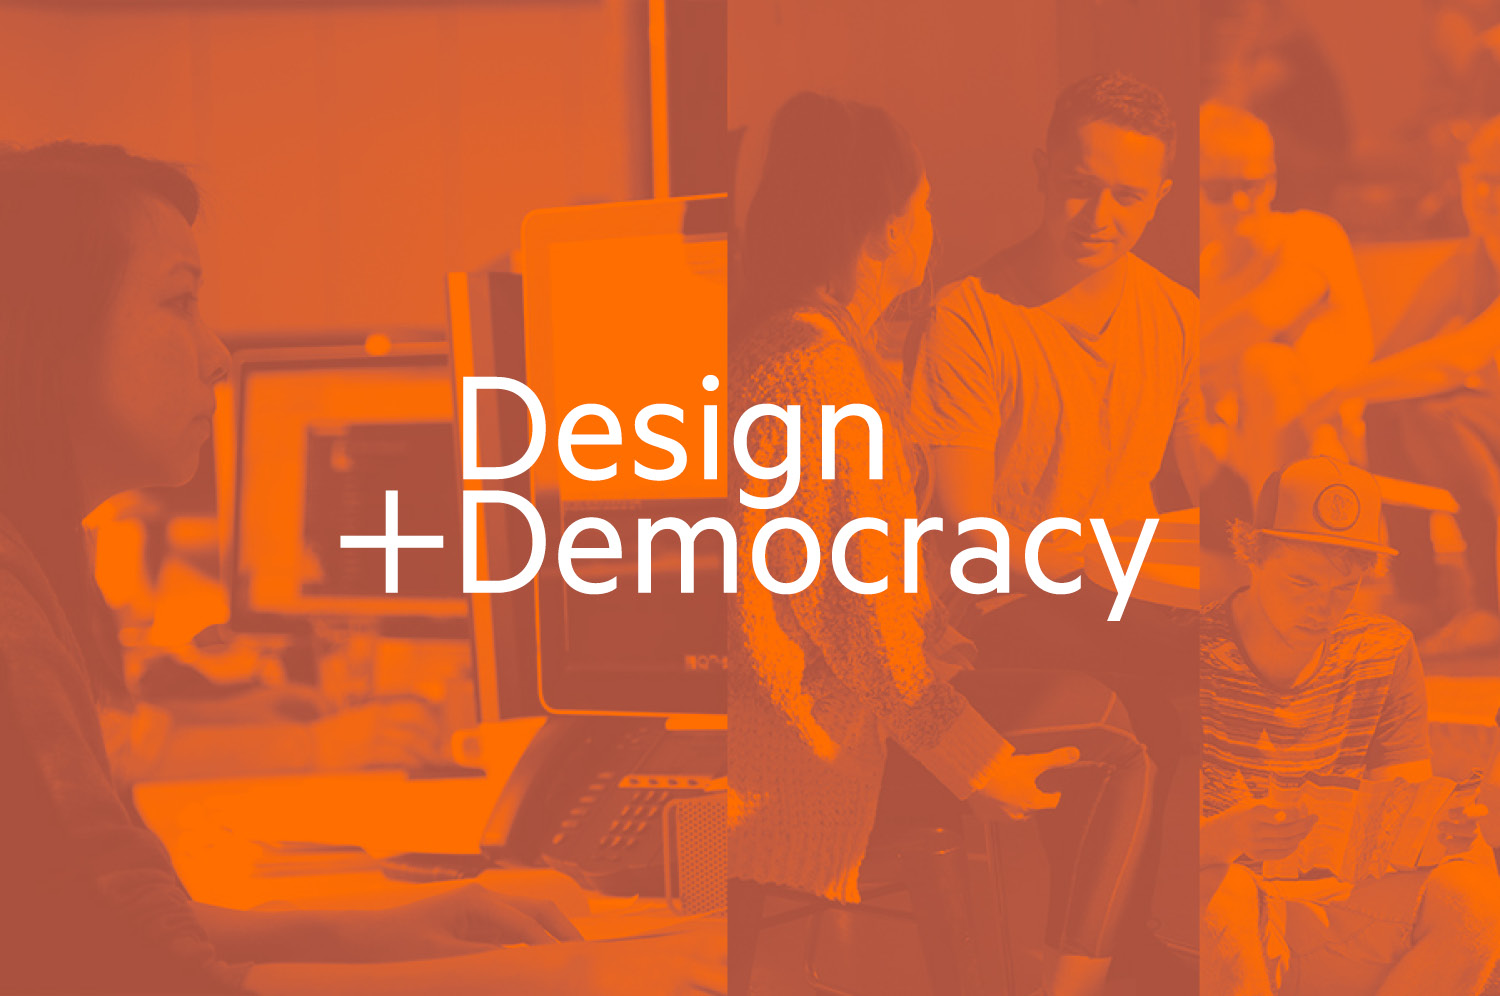 The Design+Democracy Project